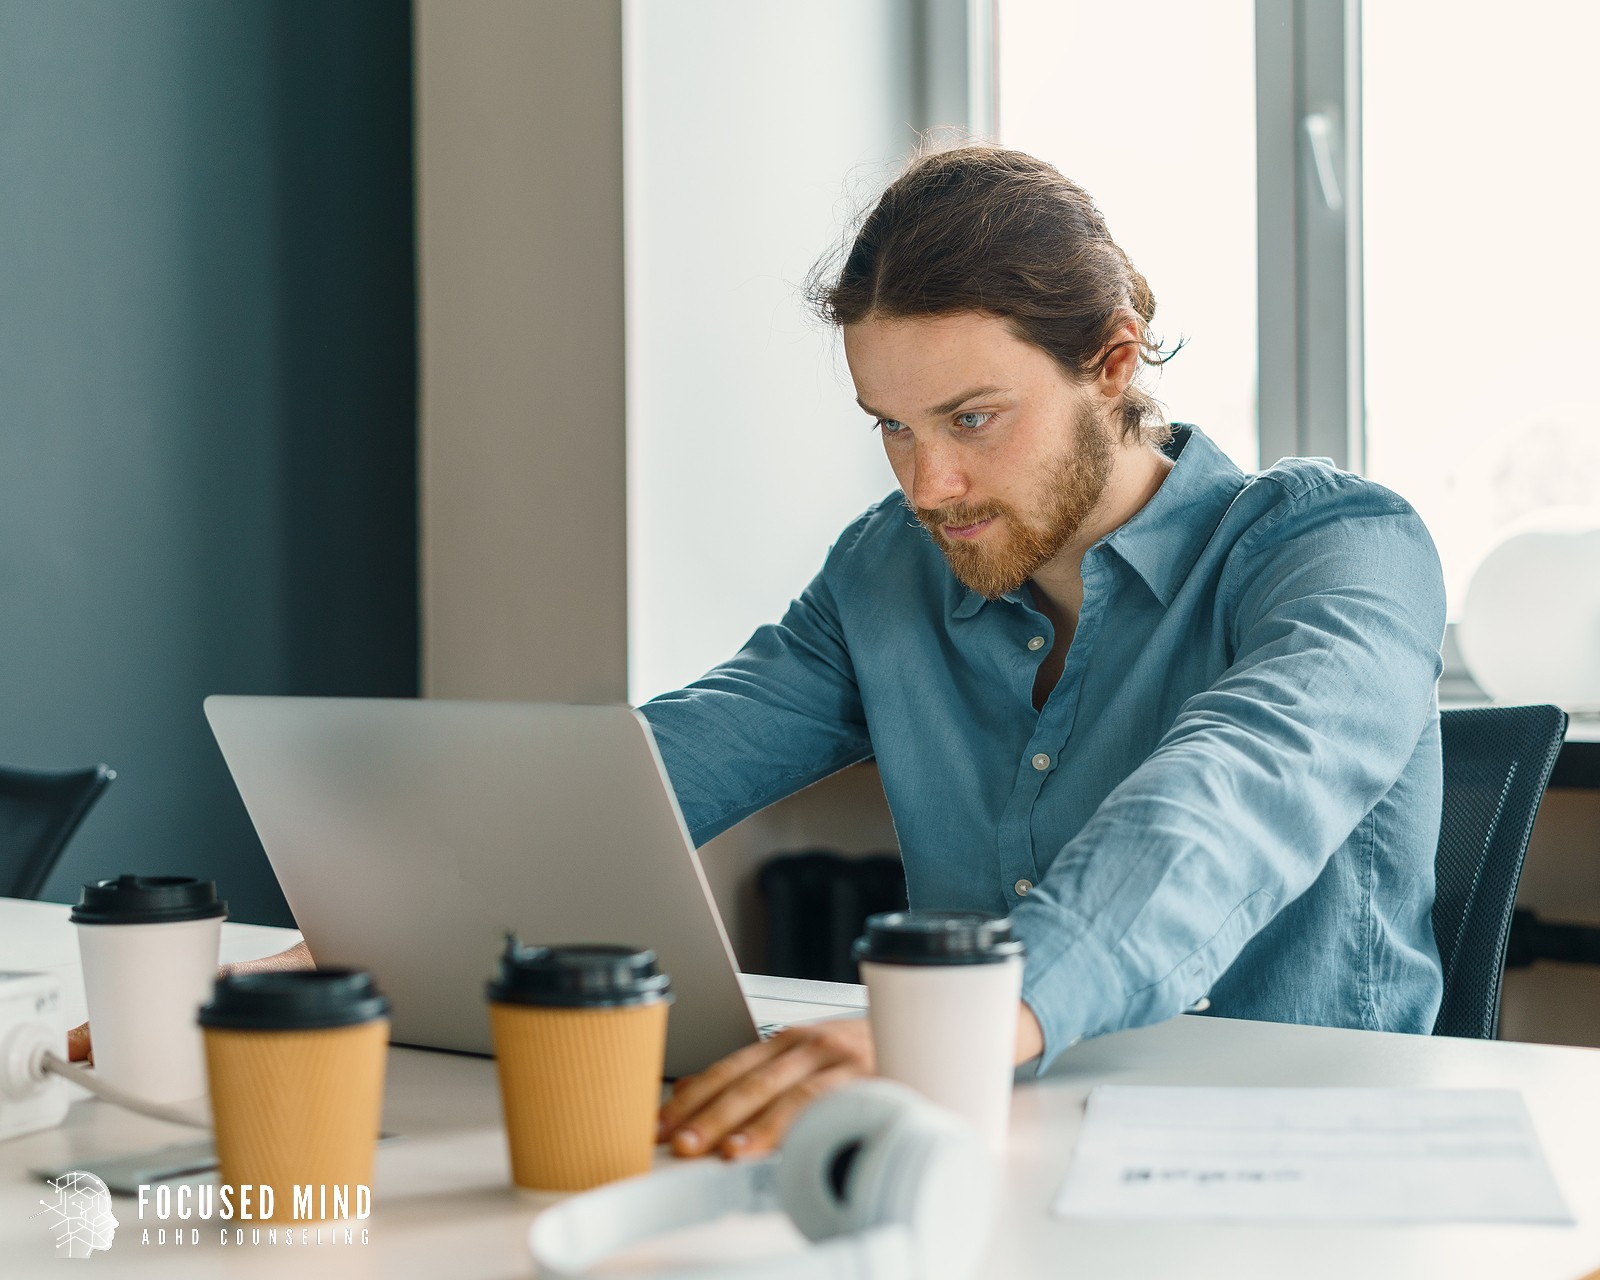 A man sits at a table with multiple coffee cups scattered. This represents how ADHD and workaholism can overtake one's attention. Focused Mind ADHD Counseling can help you overcome ADHD and hyperfocus in Columbus, OH. Contact a therapist in Columbus Ohio for support today!